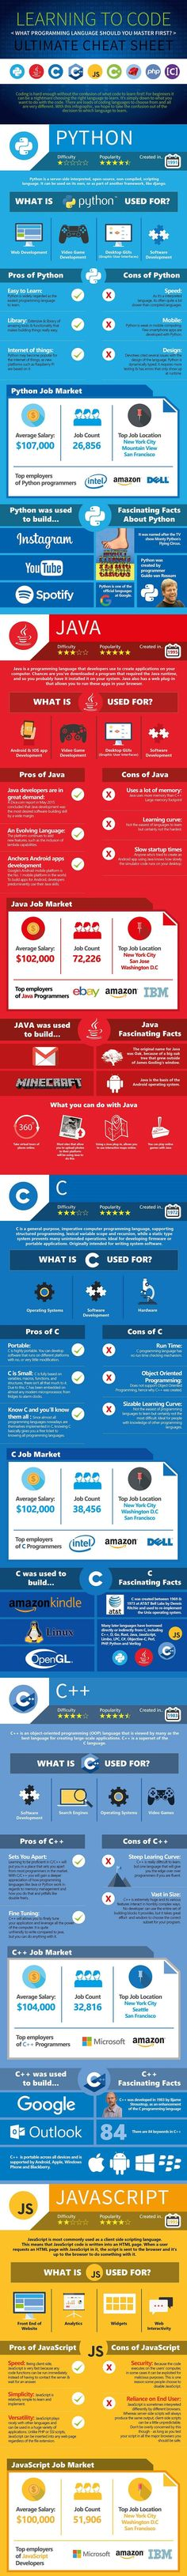 Should You Learn Python, C, or Ruby to Be a Top Coder? (Infographic) — Life Tips — Medium